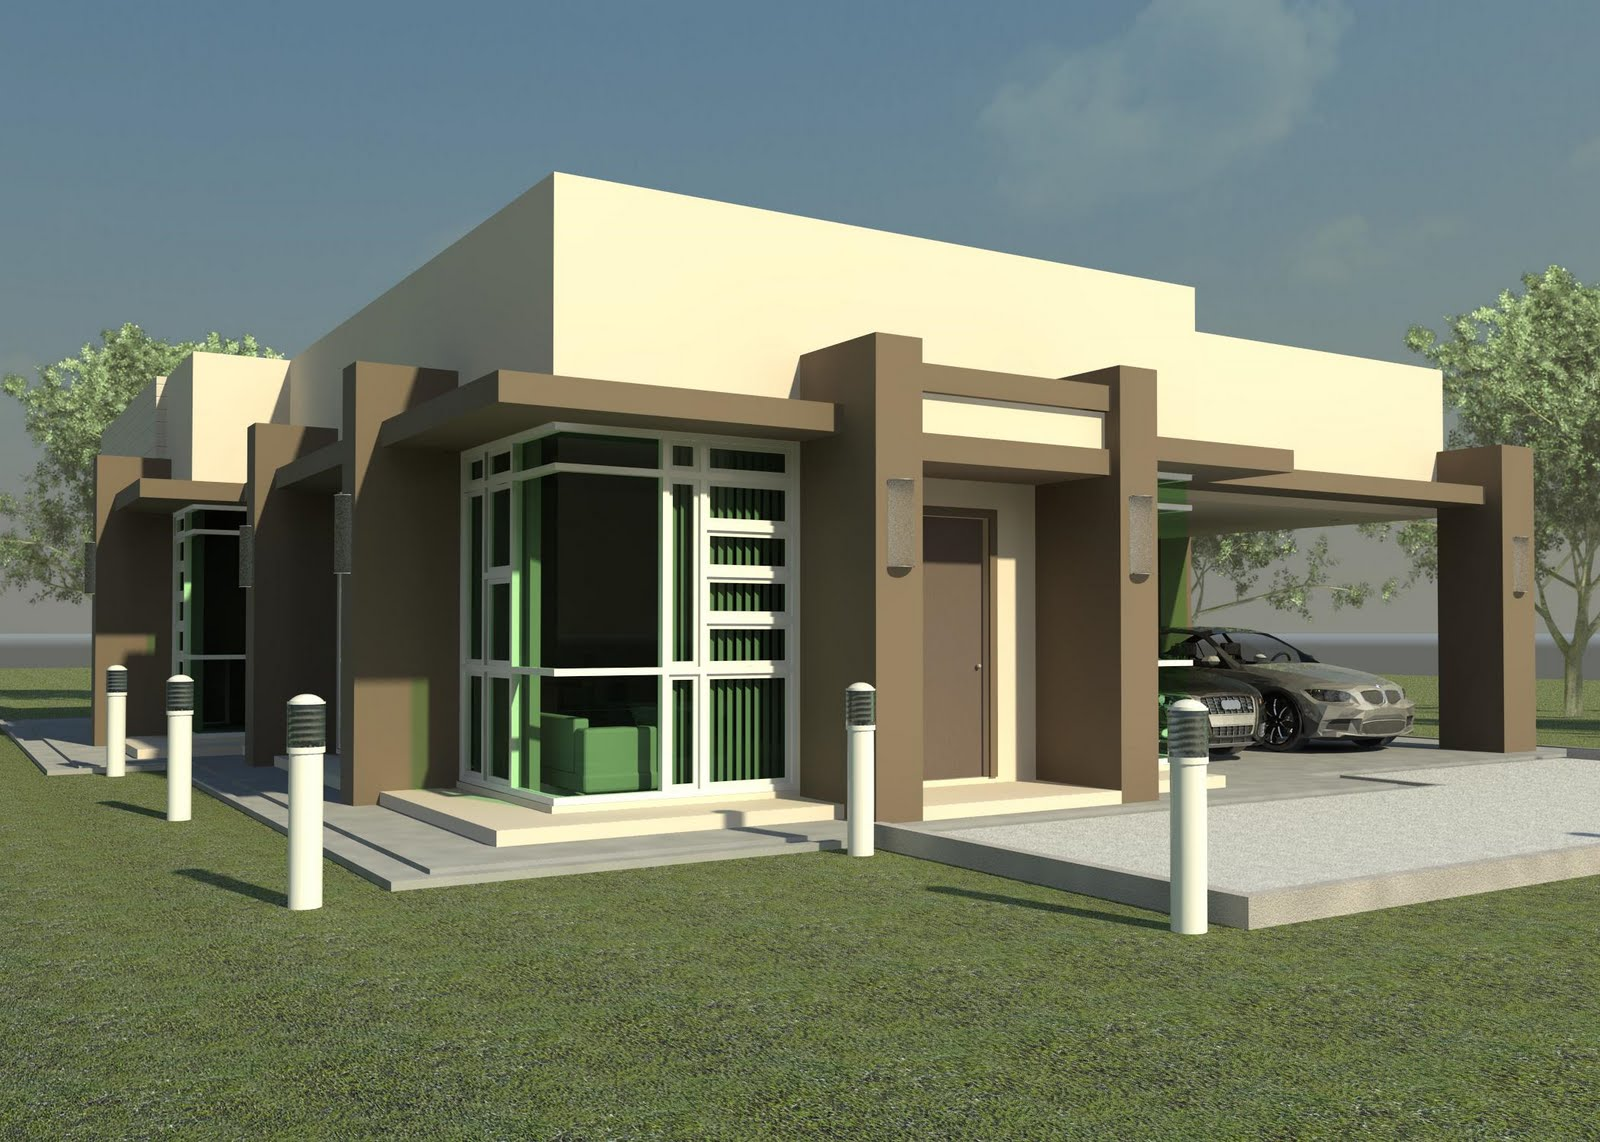 New home designs latest modern small homes designs exterior for New small home designs in india